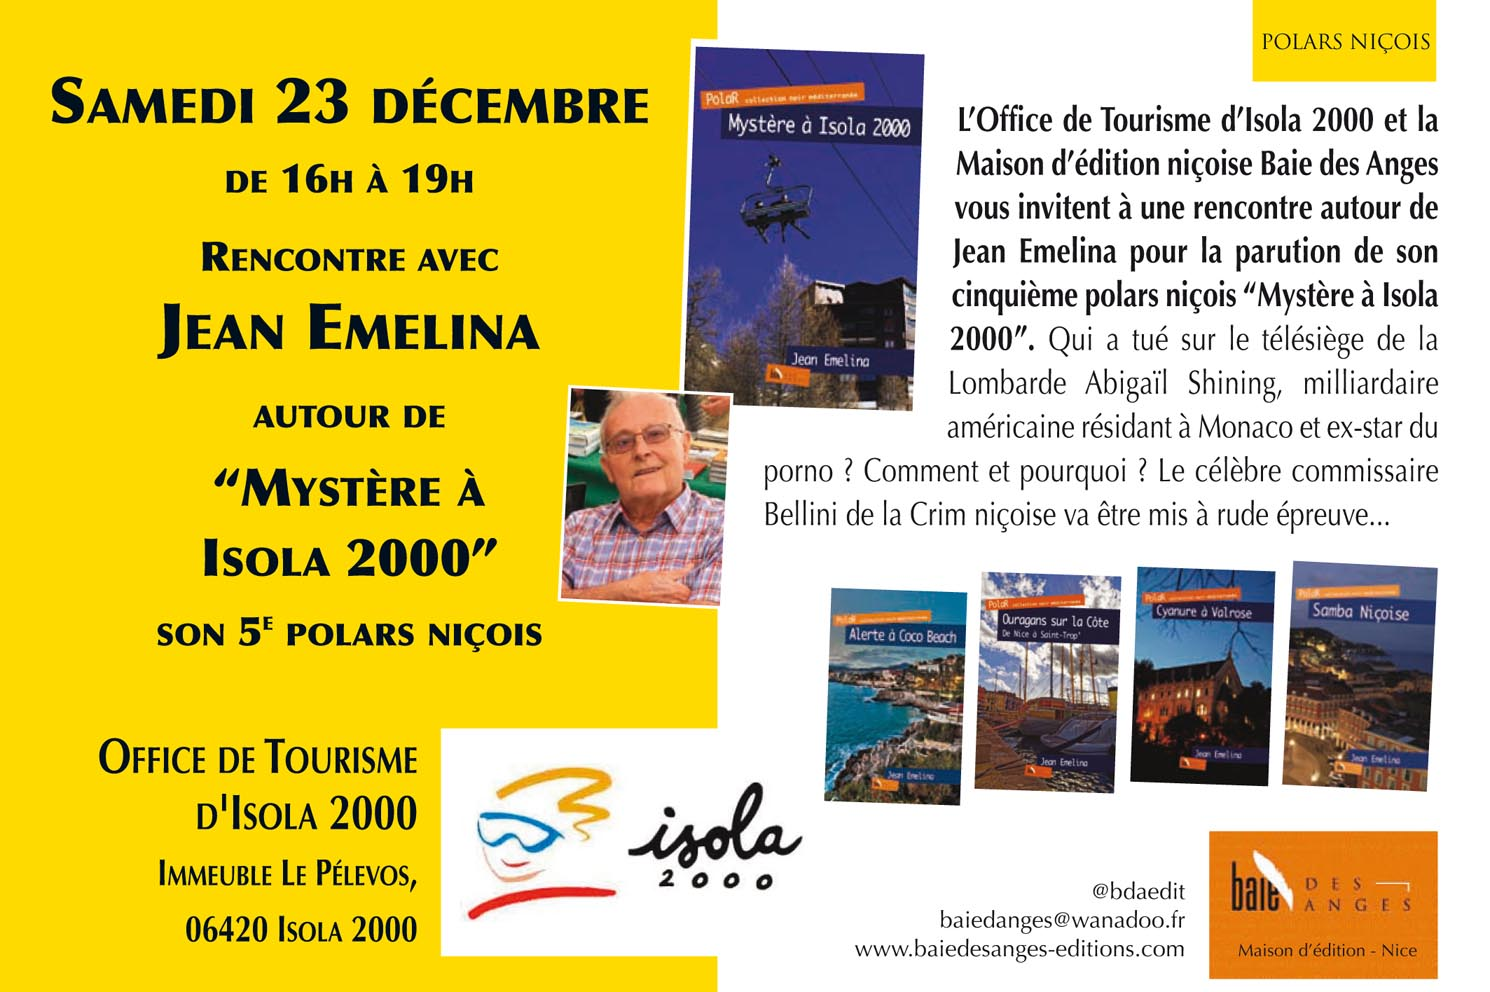 2017 baie des anges ditions - Isola 2000 office de tourisme ...